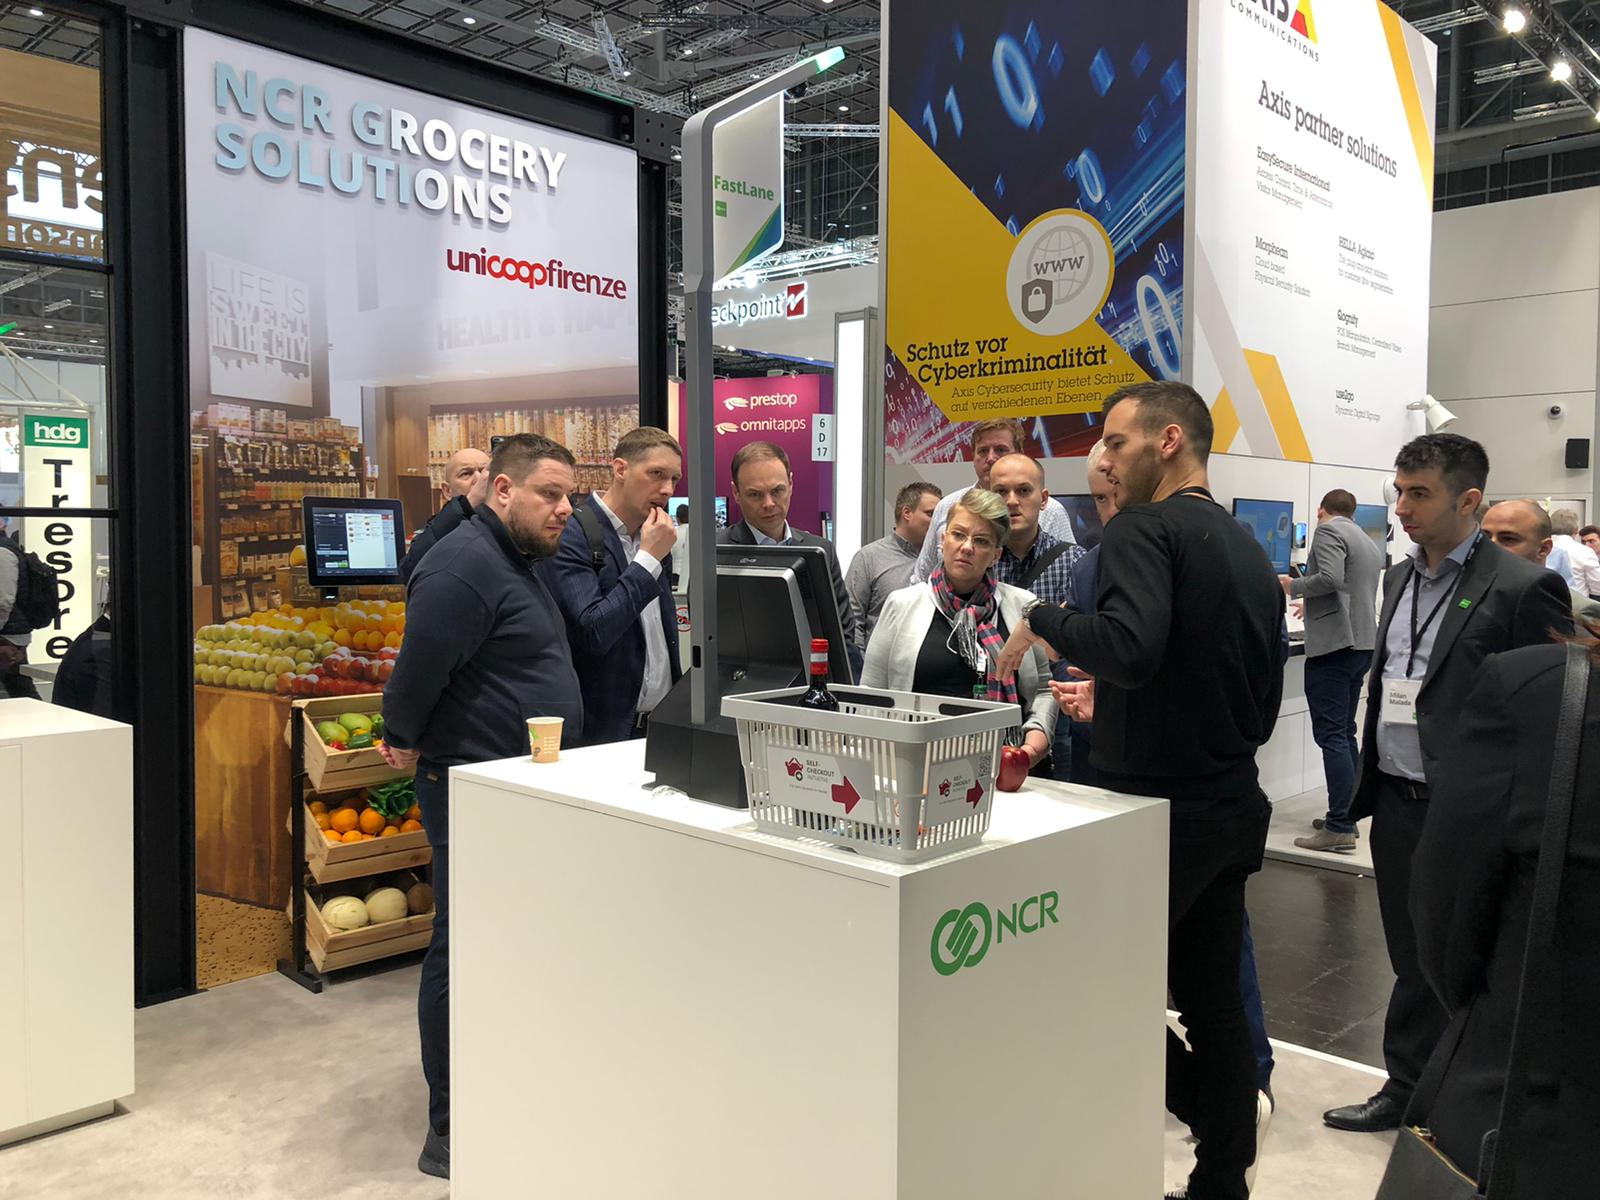 NCR Grocery Solutions - EuroShop 2020